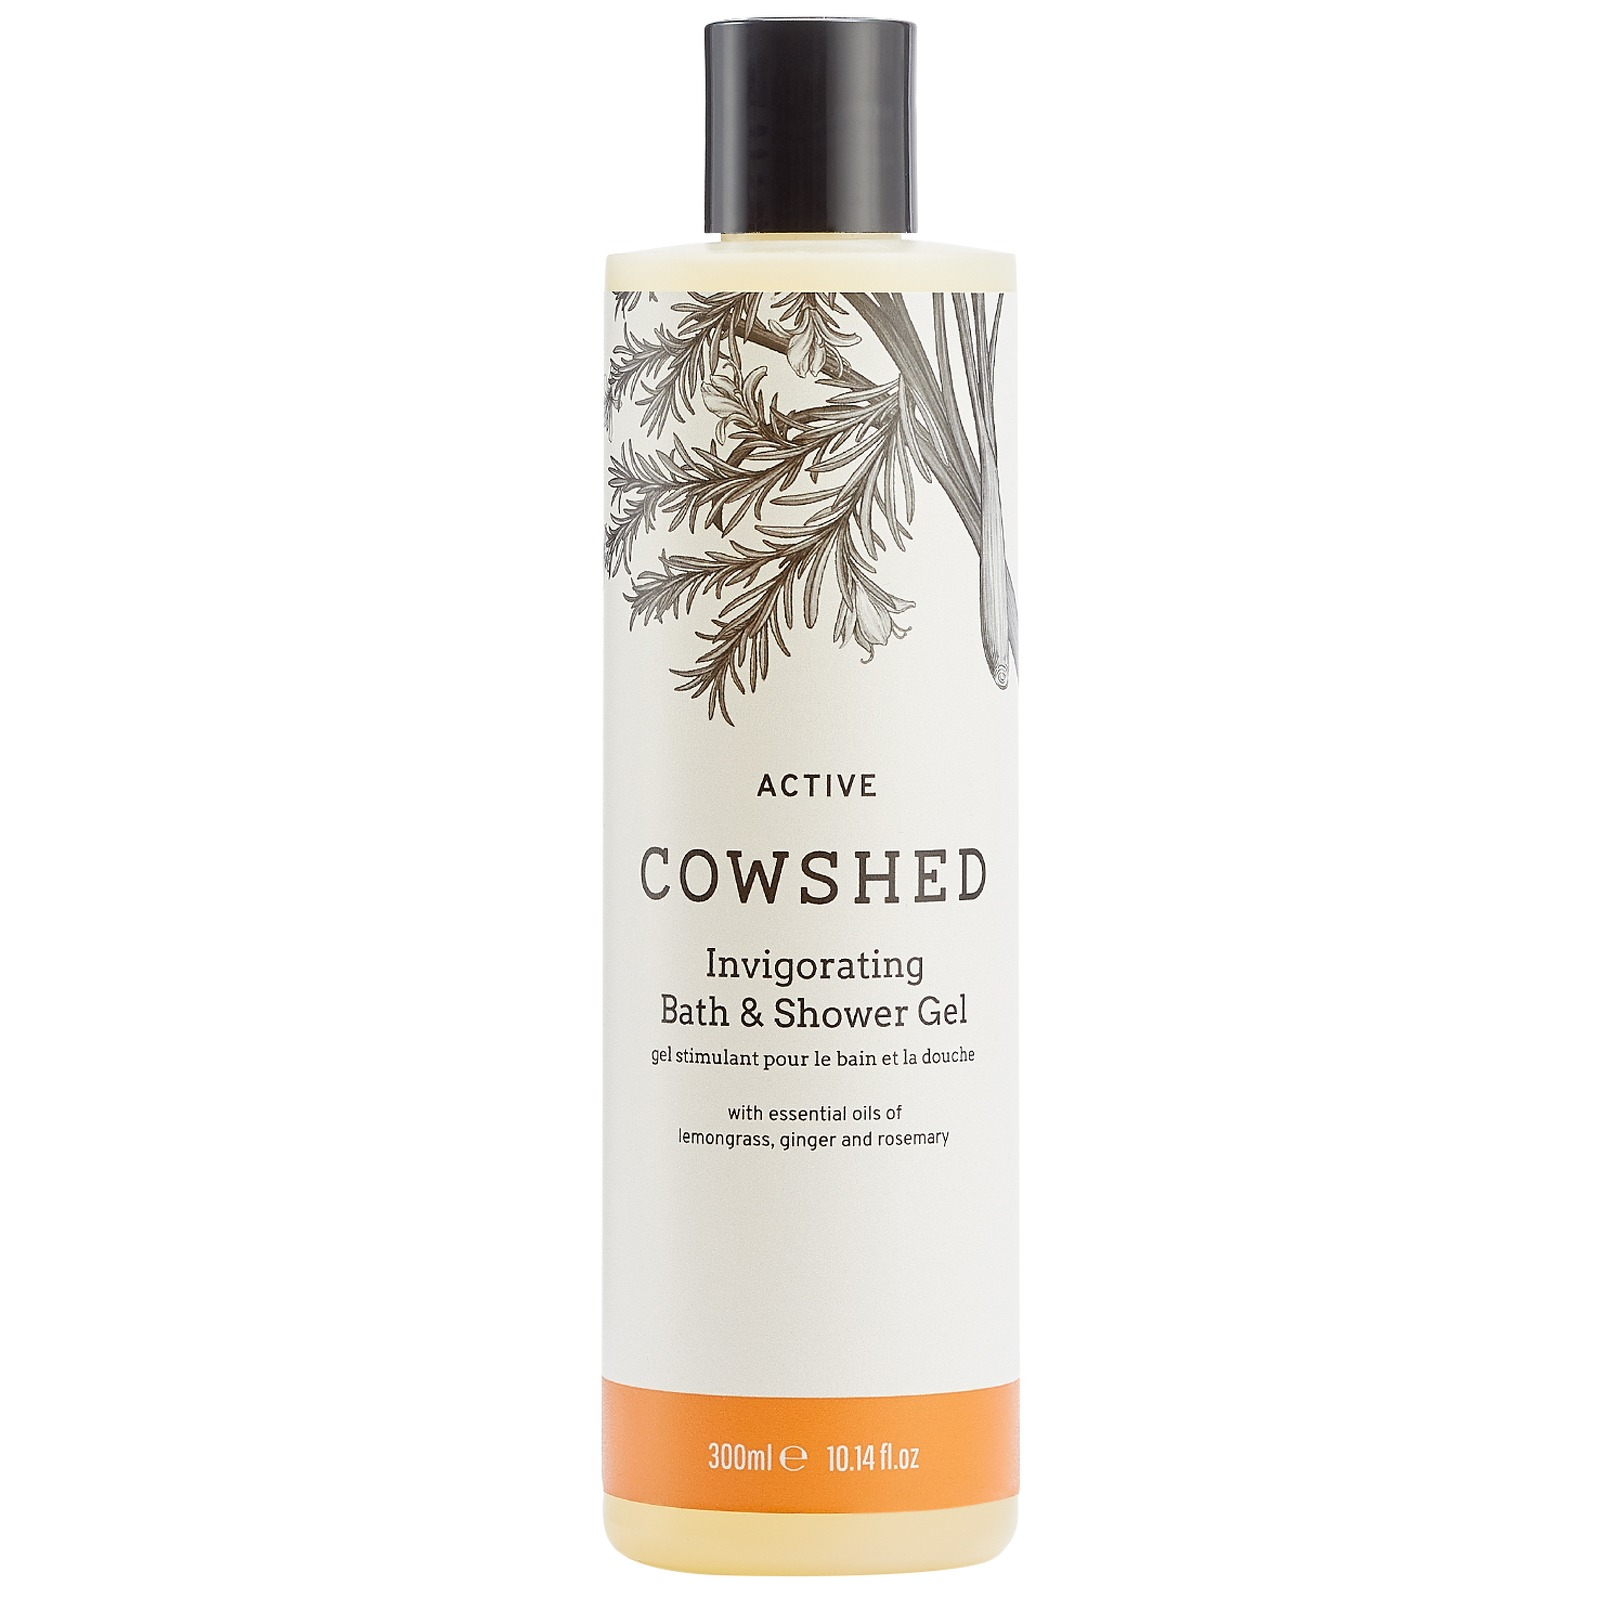 Cowshed Active Invigorating Bath & Shower Gel 300ml